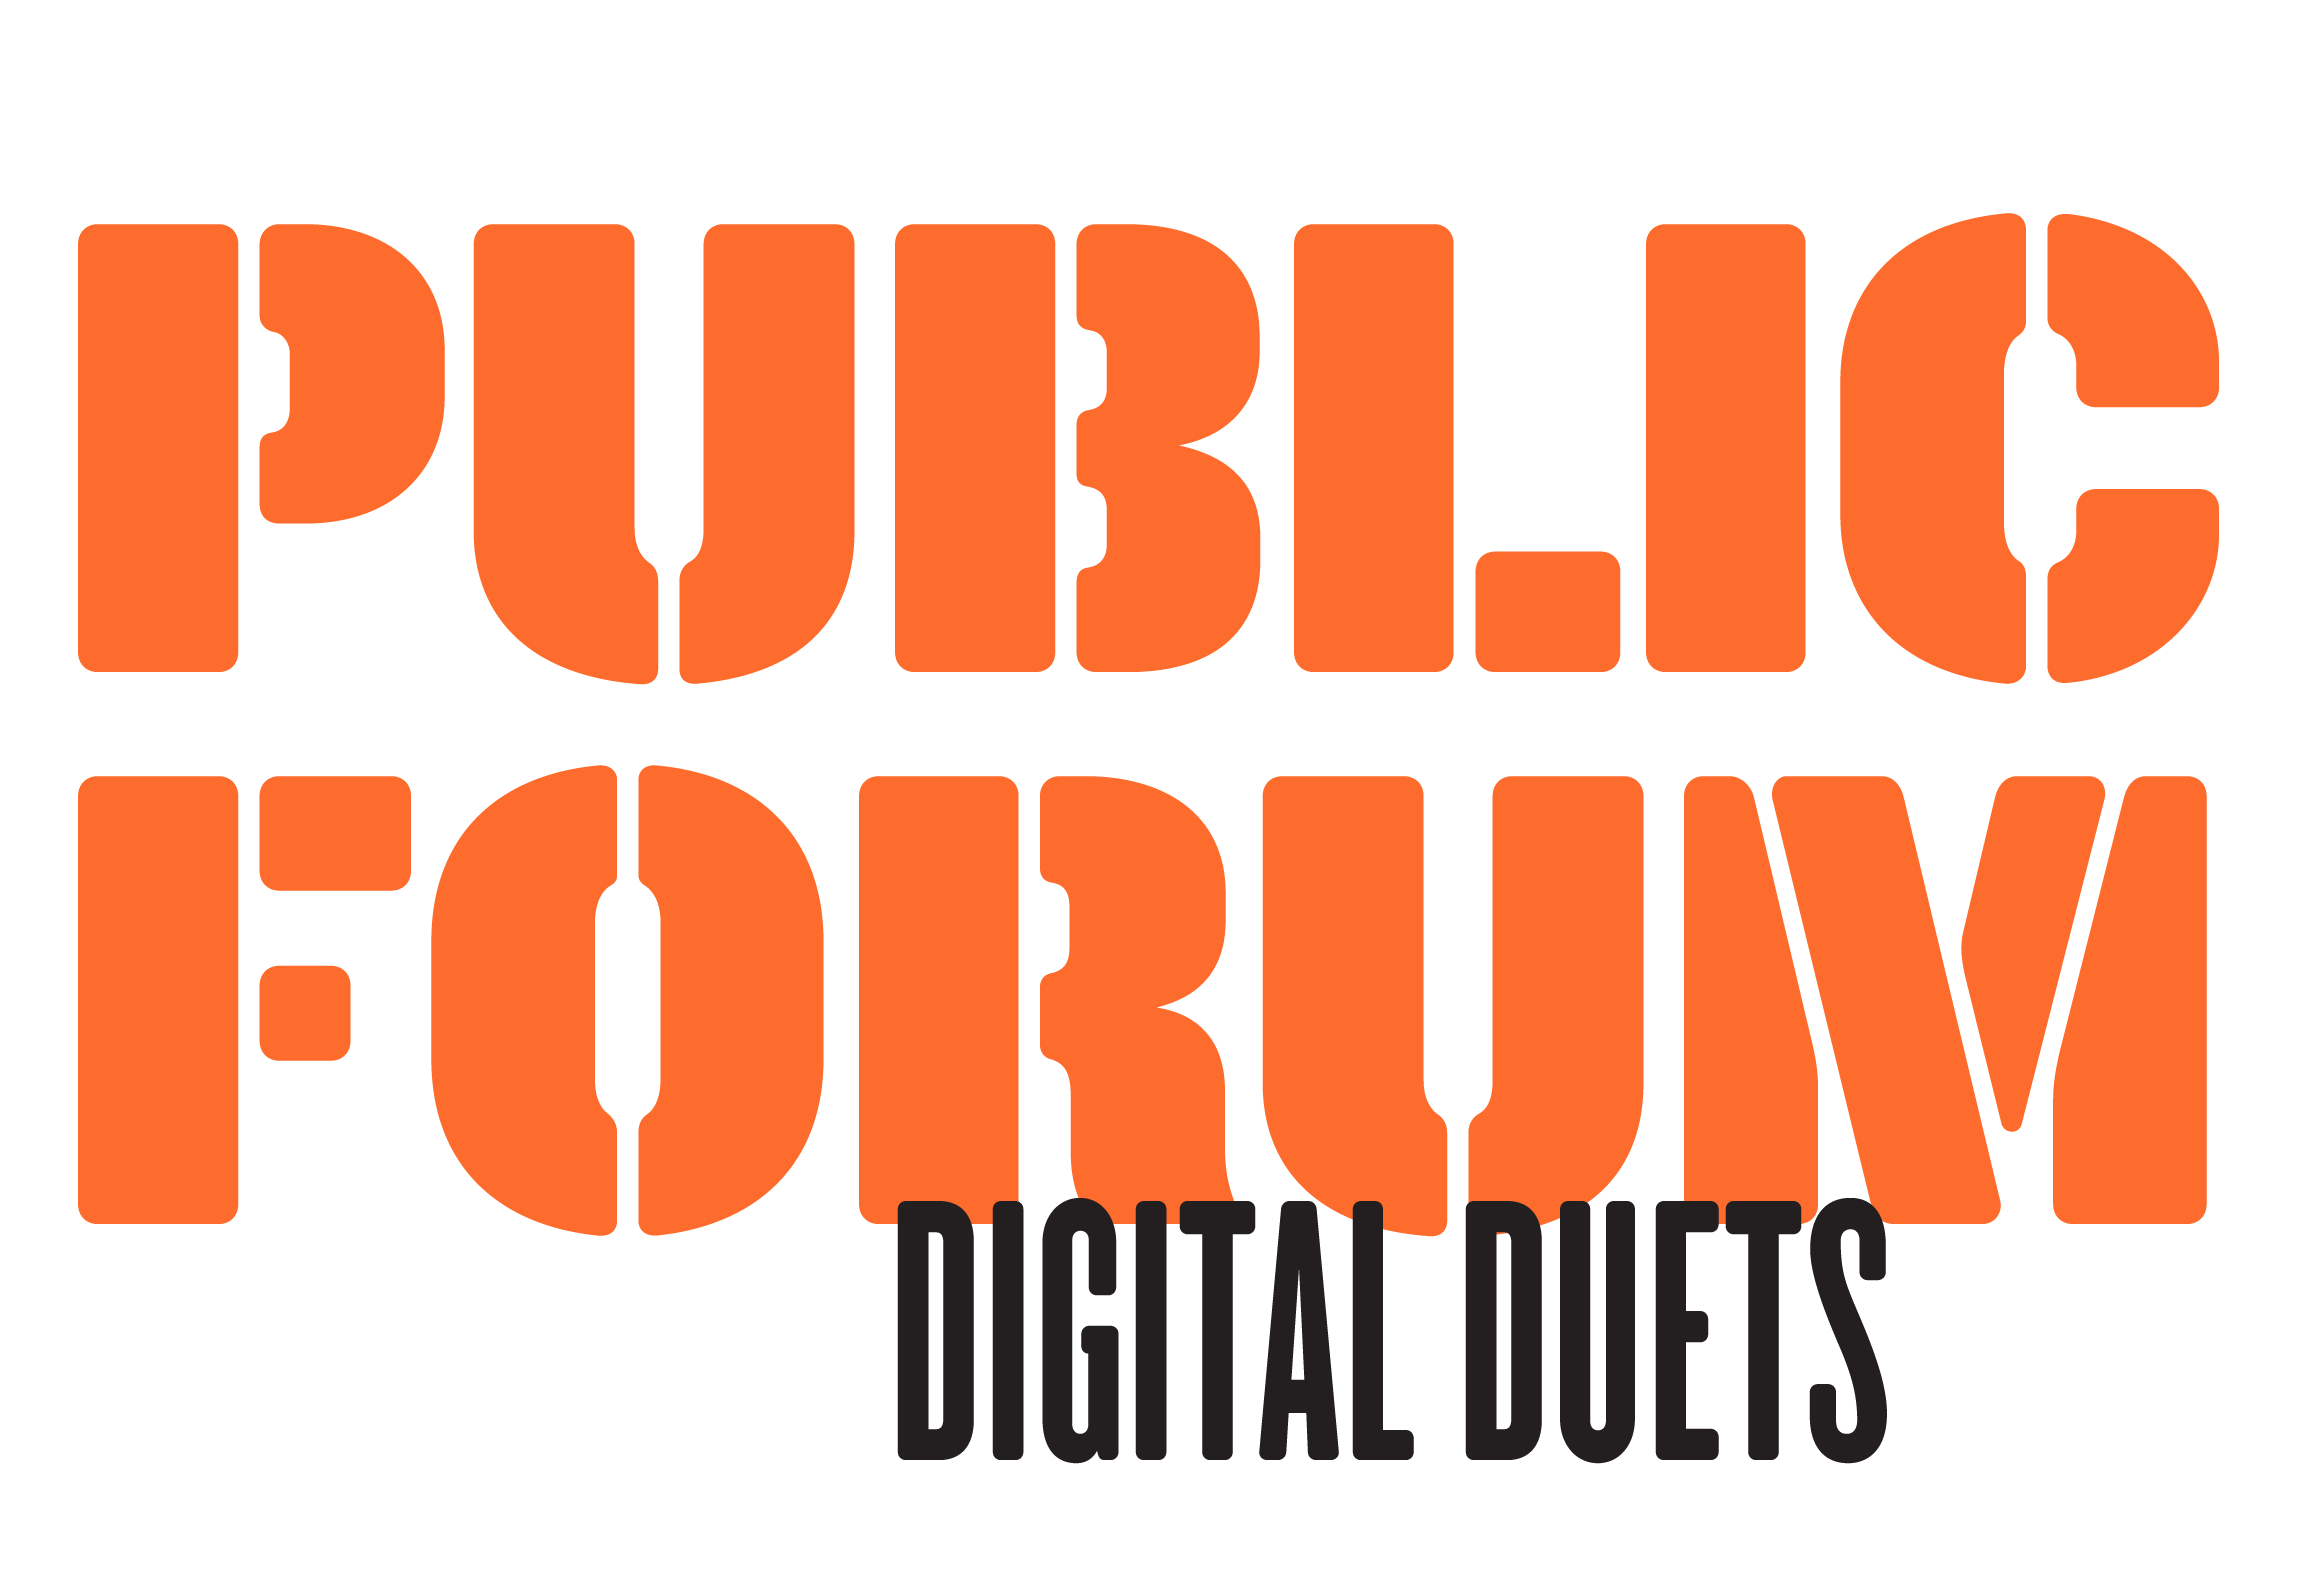 Public Forum: Digital Duets